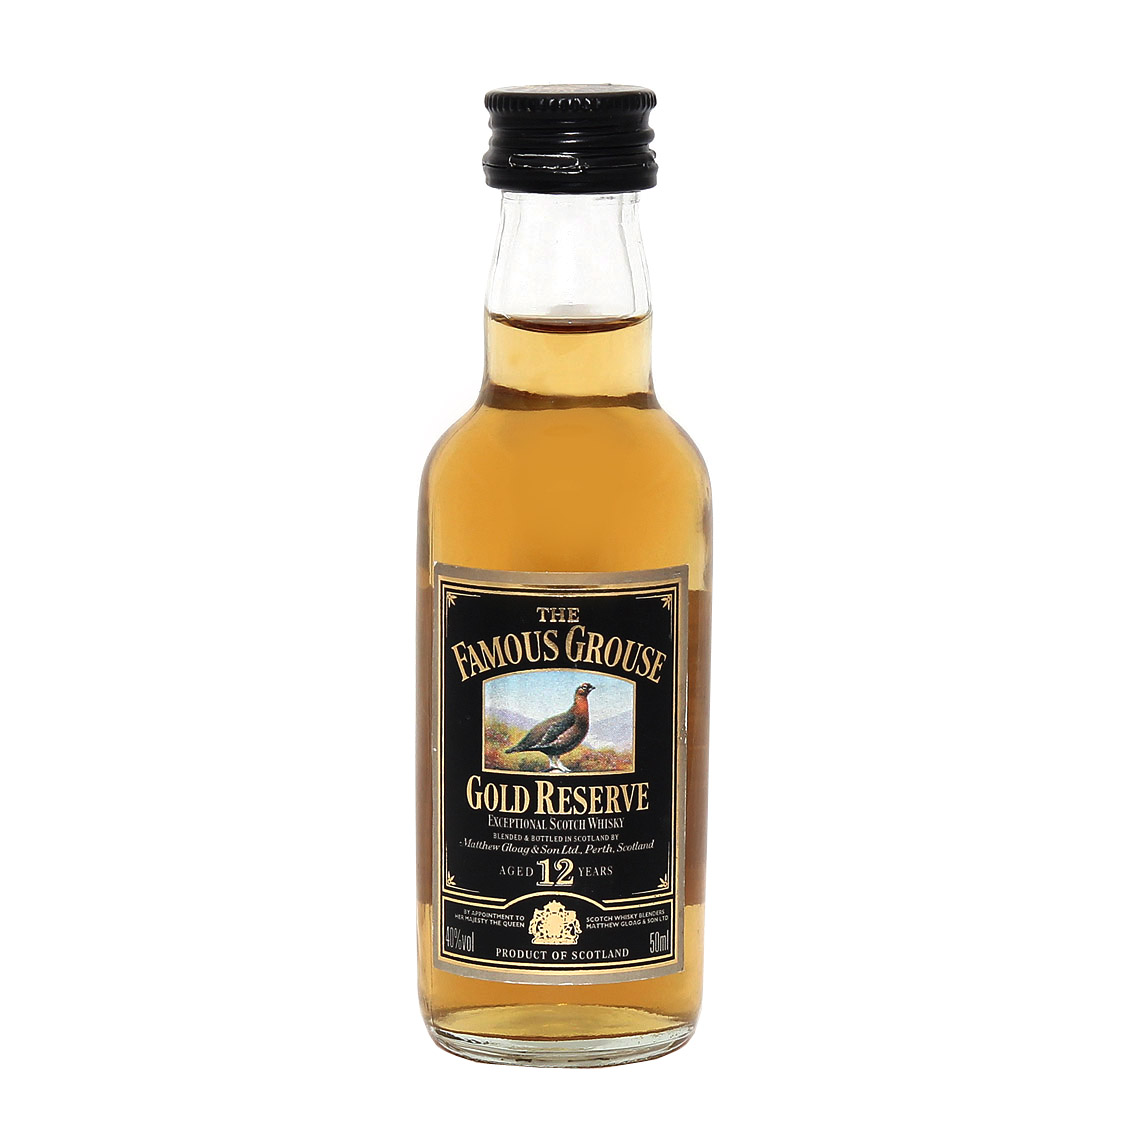 WHISKY-FAMOUS-GROUSE-GOLD-RESERVE-EXCEPTIONAL-SW-12-YO